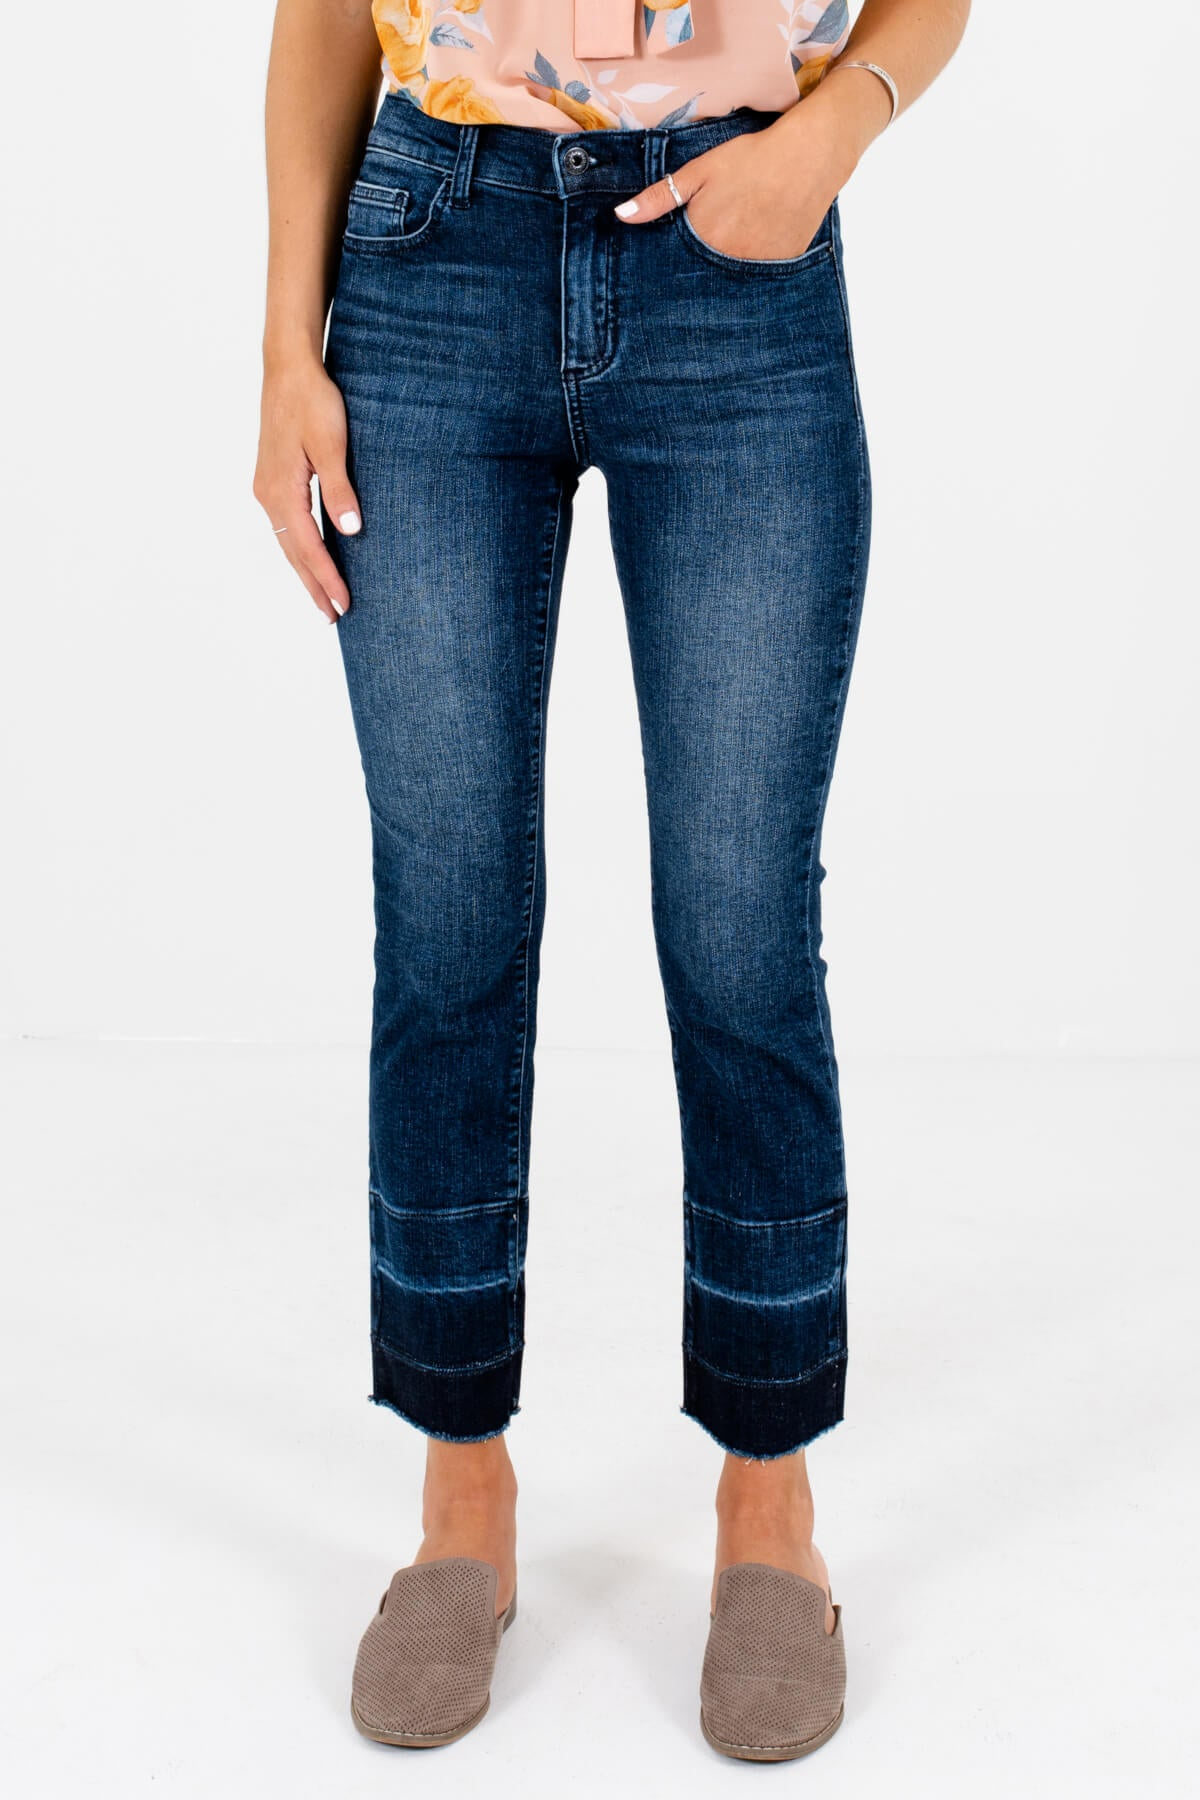 Dark Wash Denim Blue Straight Silhouette Boutique Jeans for Women